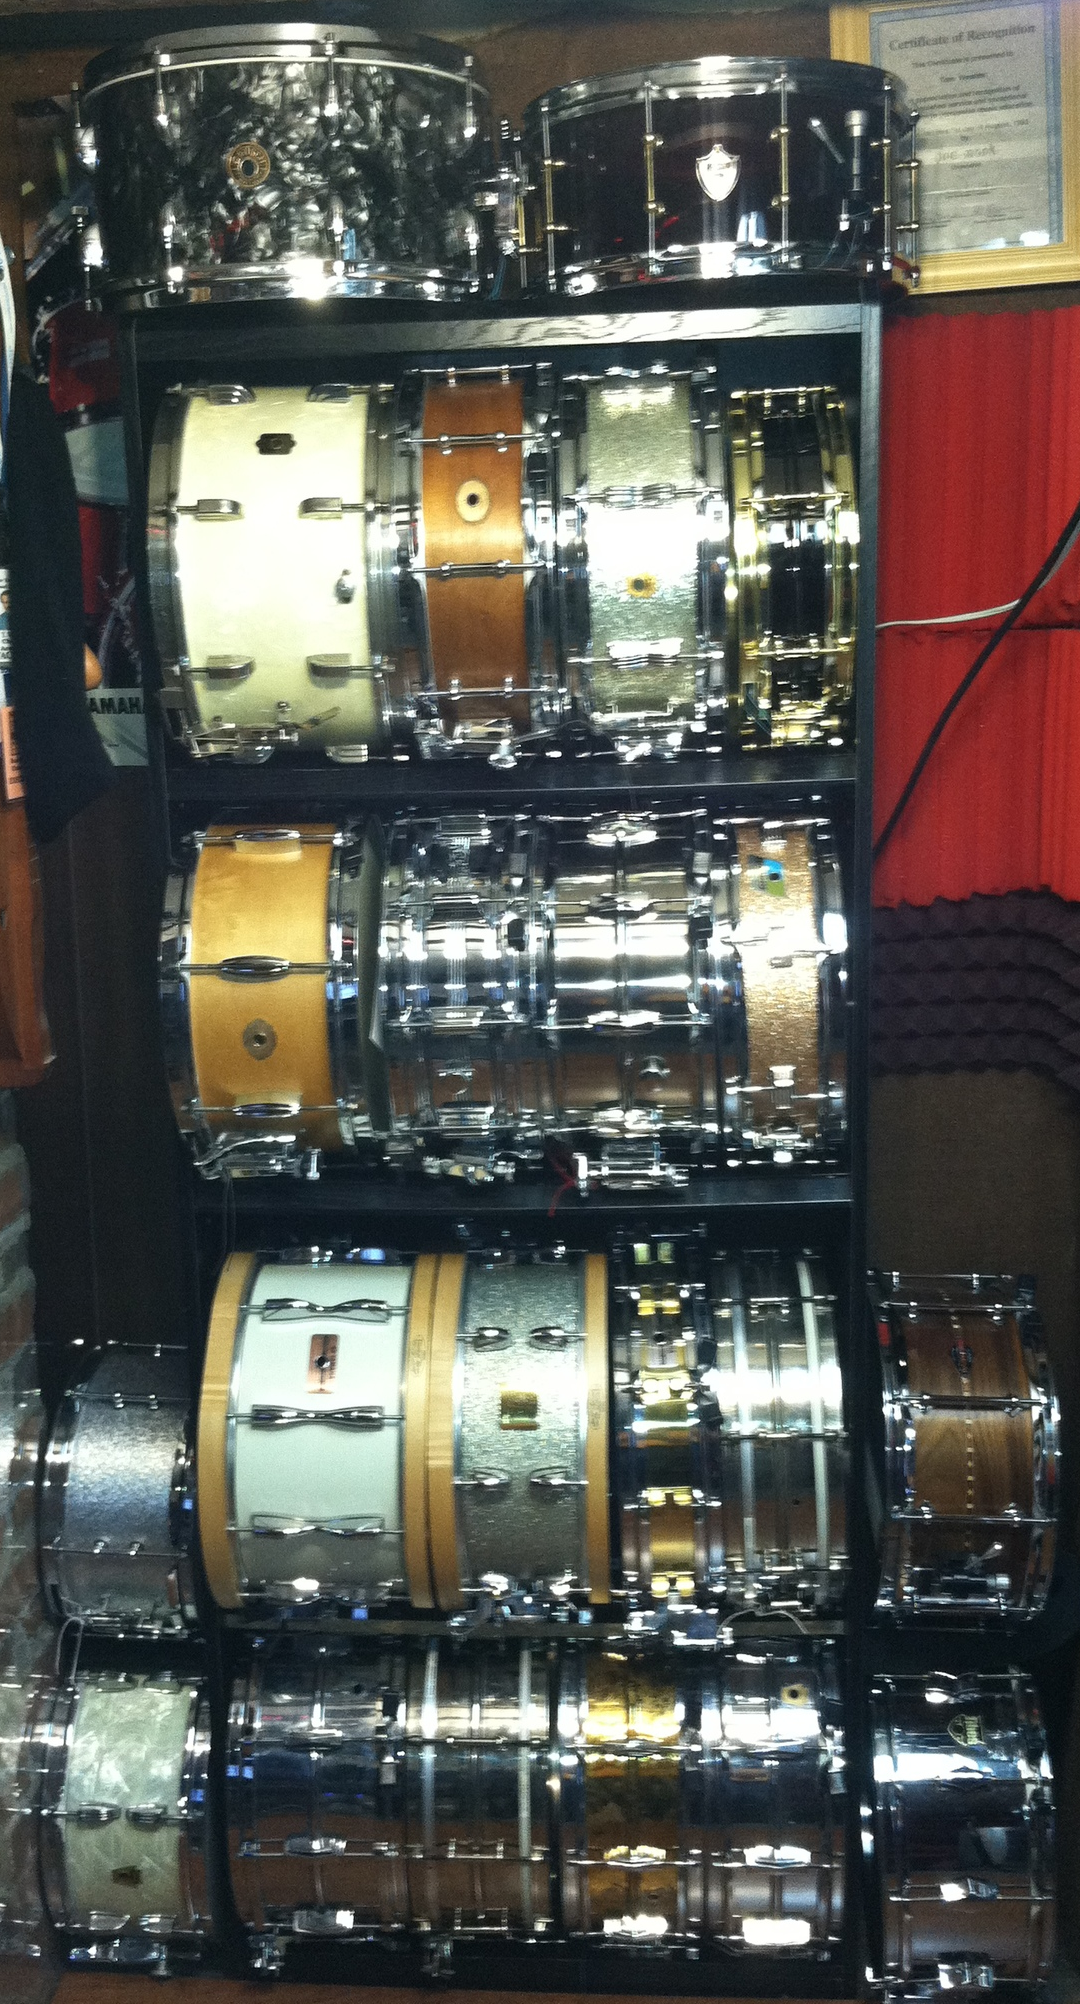 22 of 32 Snare Drums